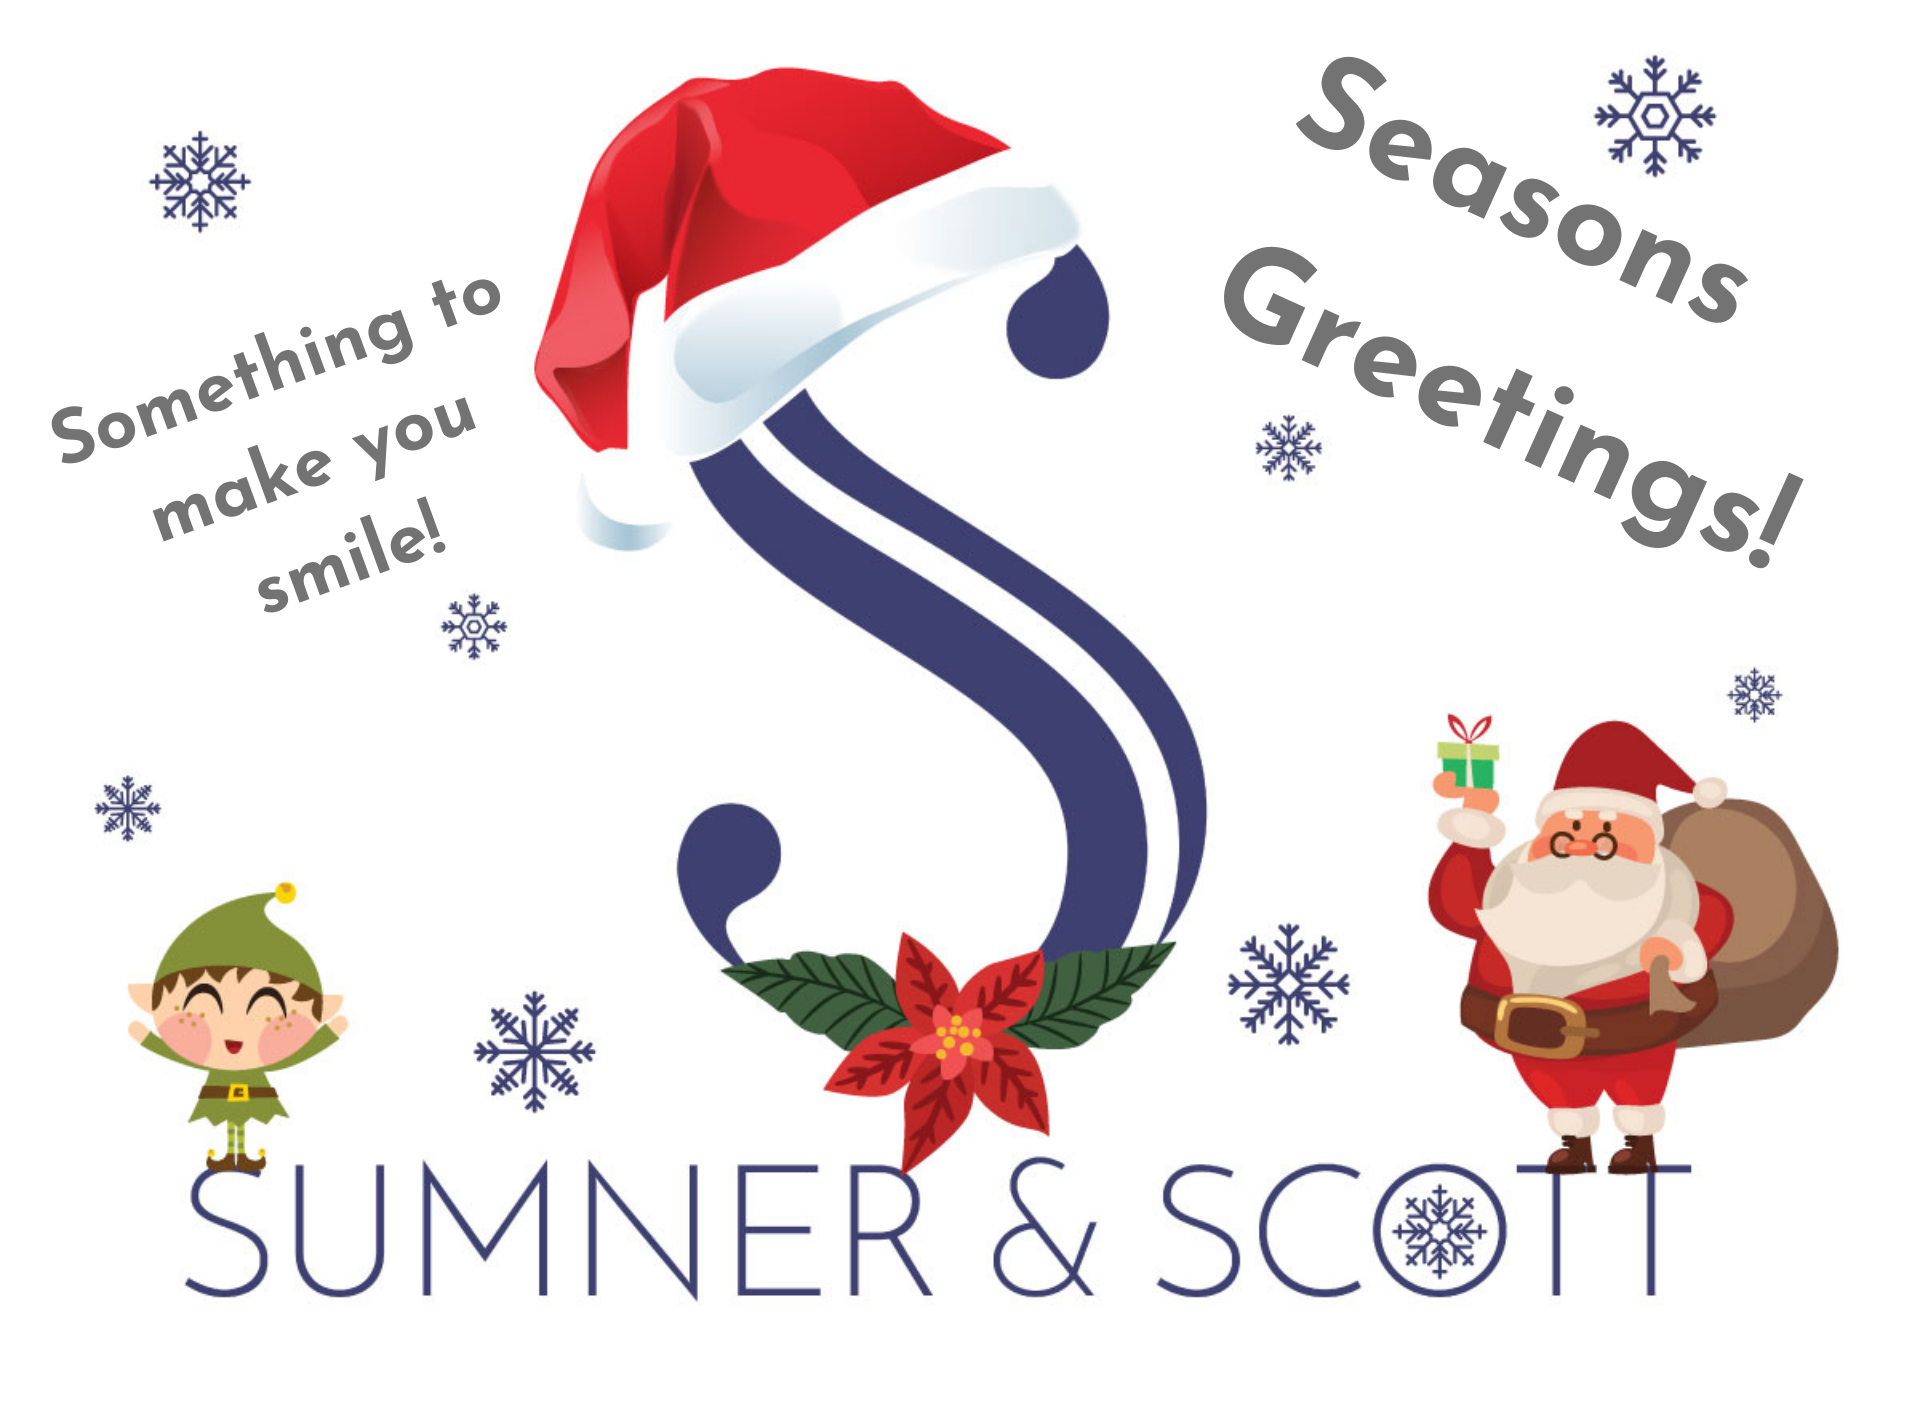 Seasons Greetings from Sumner & Scott!